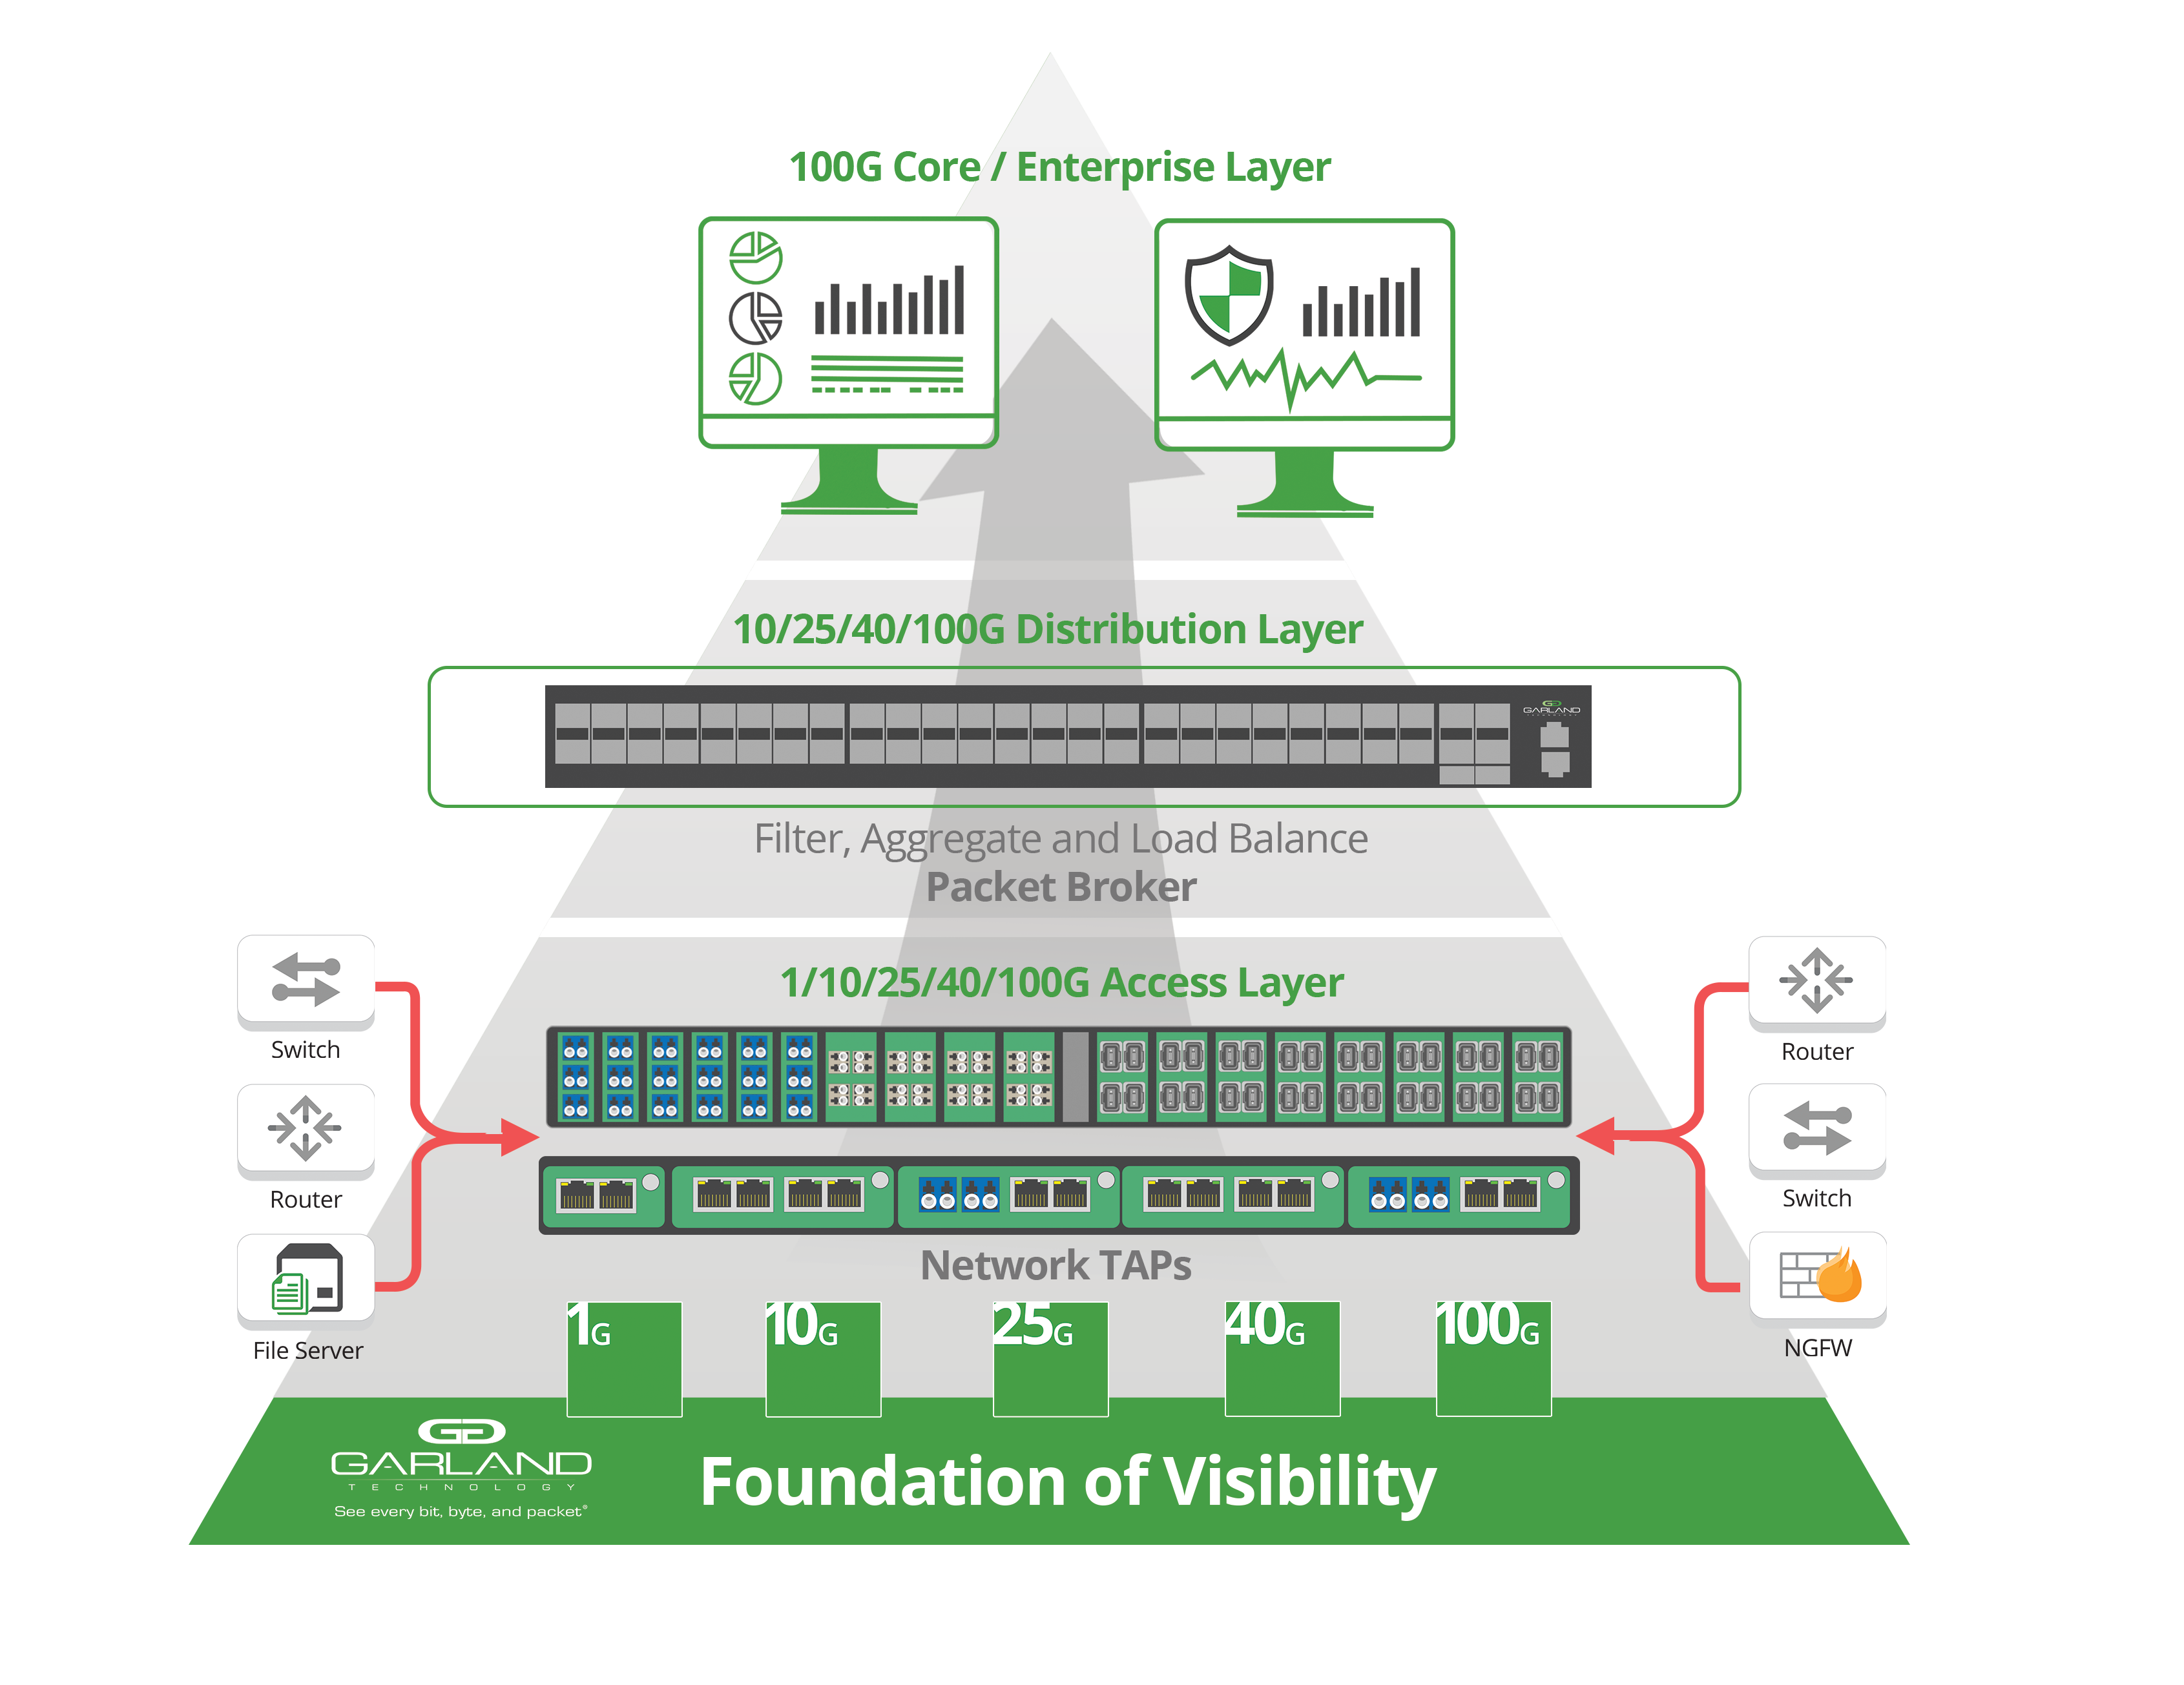 Foundation of Visibility